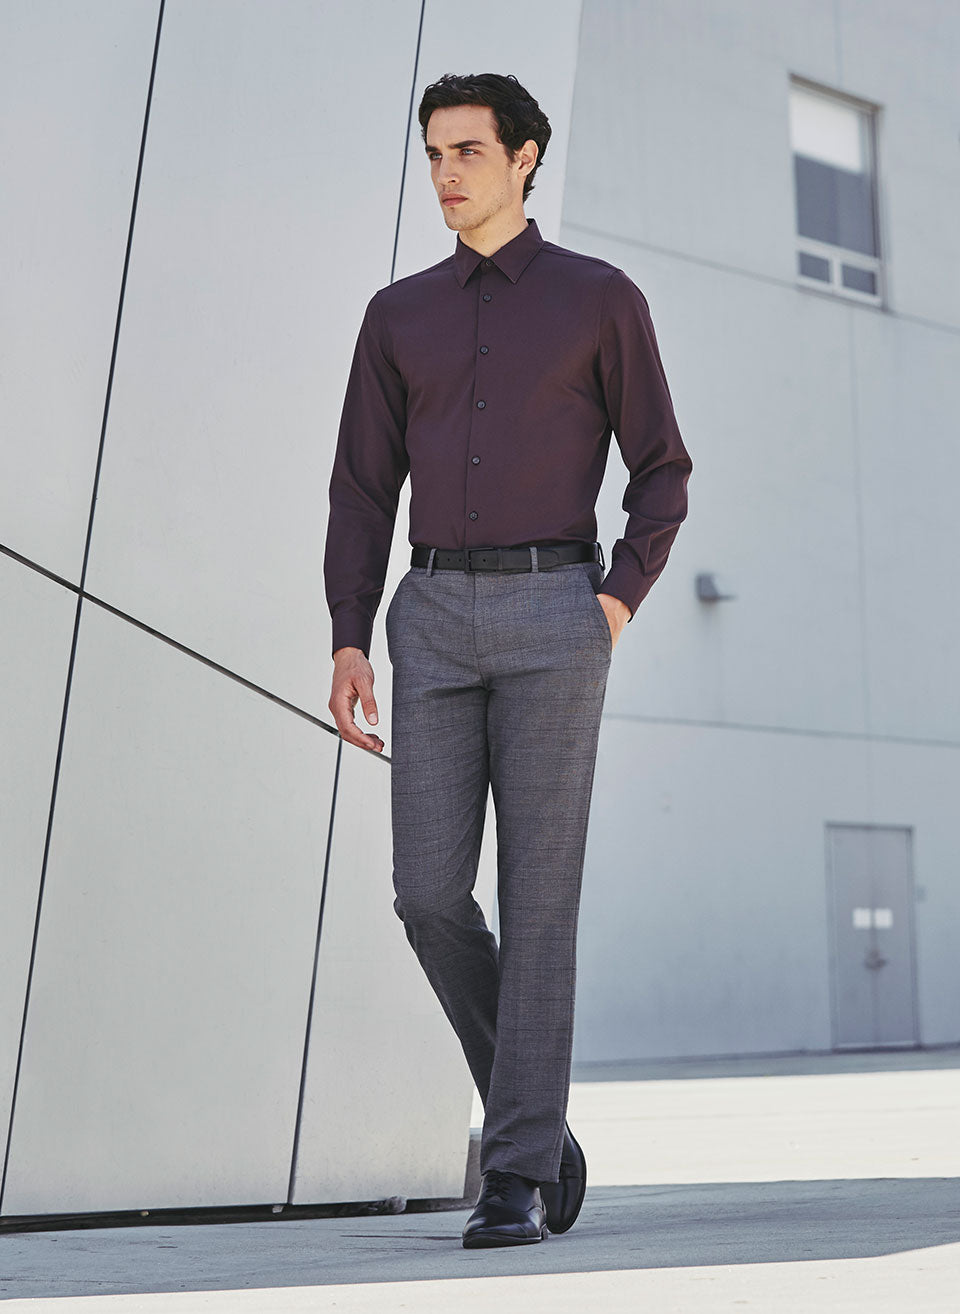 34.99 DRESS SHIRT & PANTS | SHOP NOW